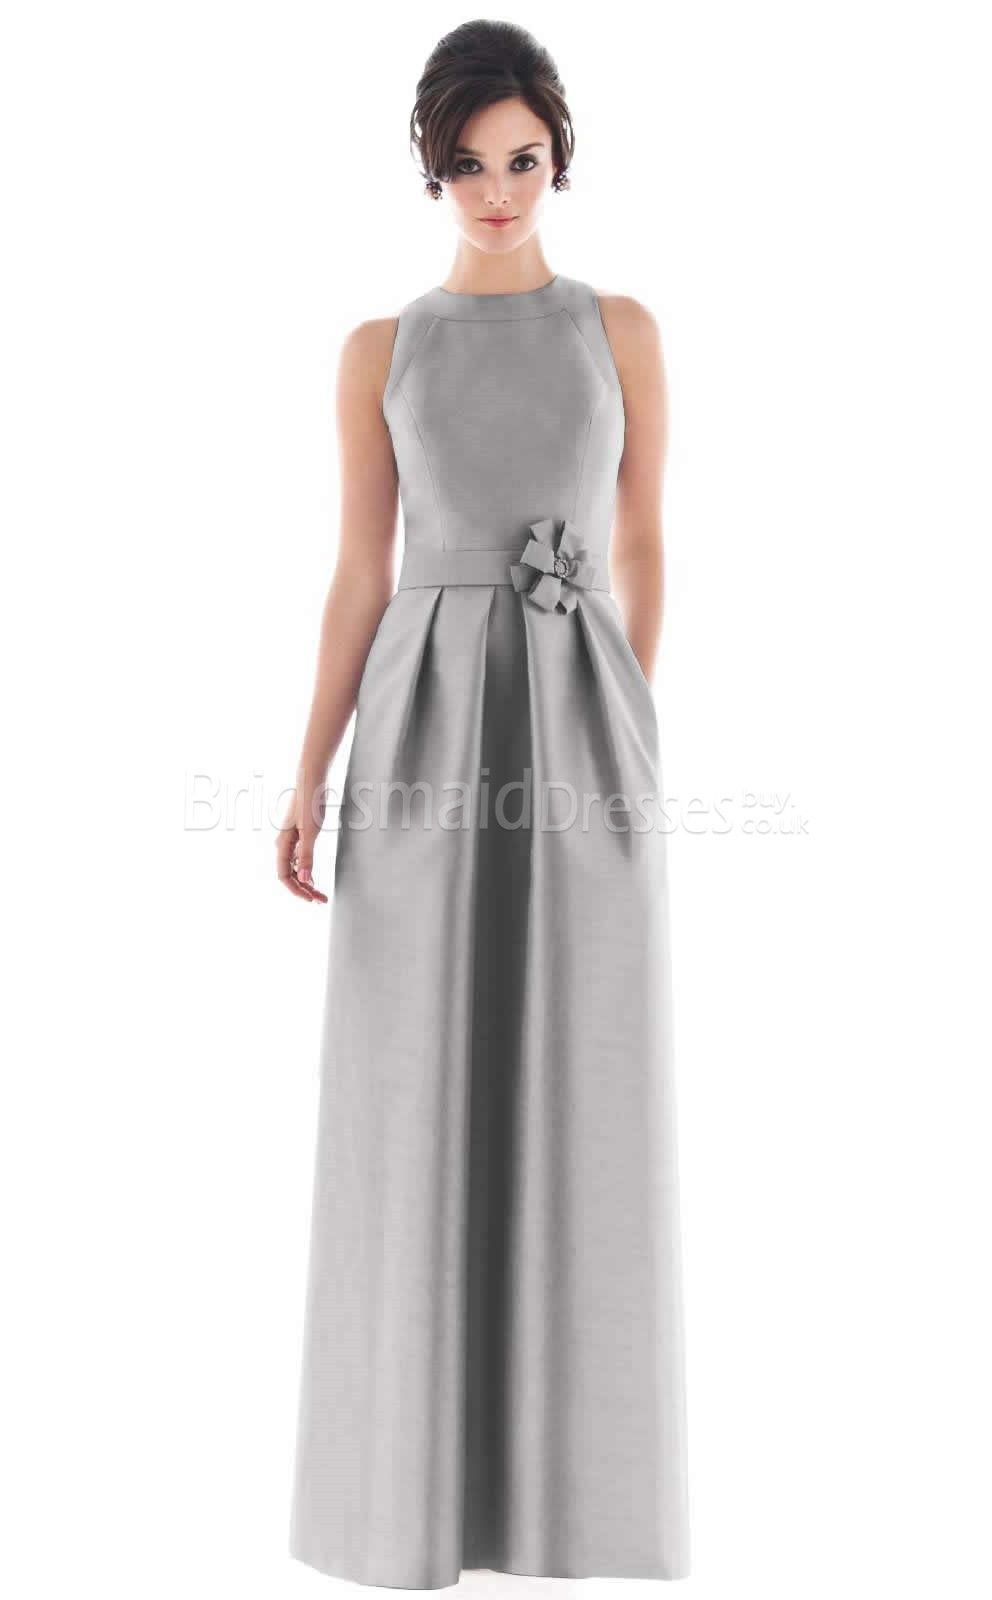 Silver bridesmaid dresses something blue pinterest wedding alfred sung long bridesmaid dress with pockets by dessy ombrellifo Choice Image